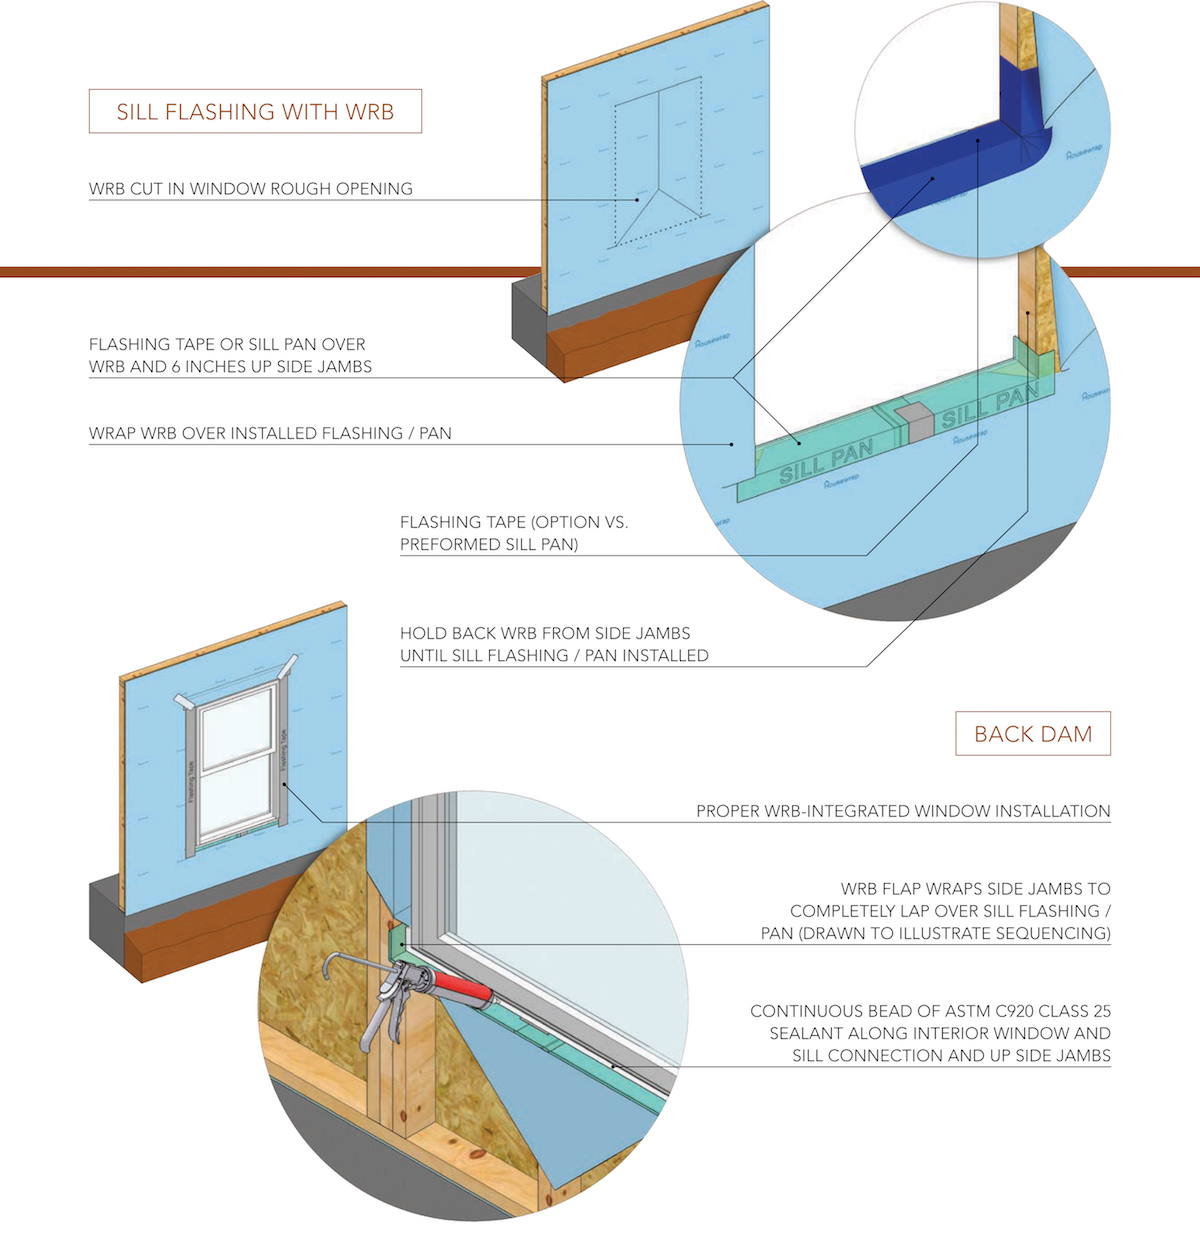 How to install window flashing tape - 1 Cut The Wrb Cut Diagonals From The Center Of The Rough Opening To The Bottom Corners And Extend The Cuts 3 Inches Horizontally From Each Corner